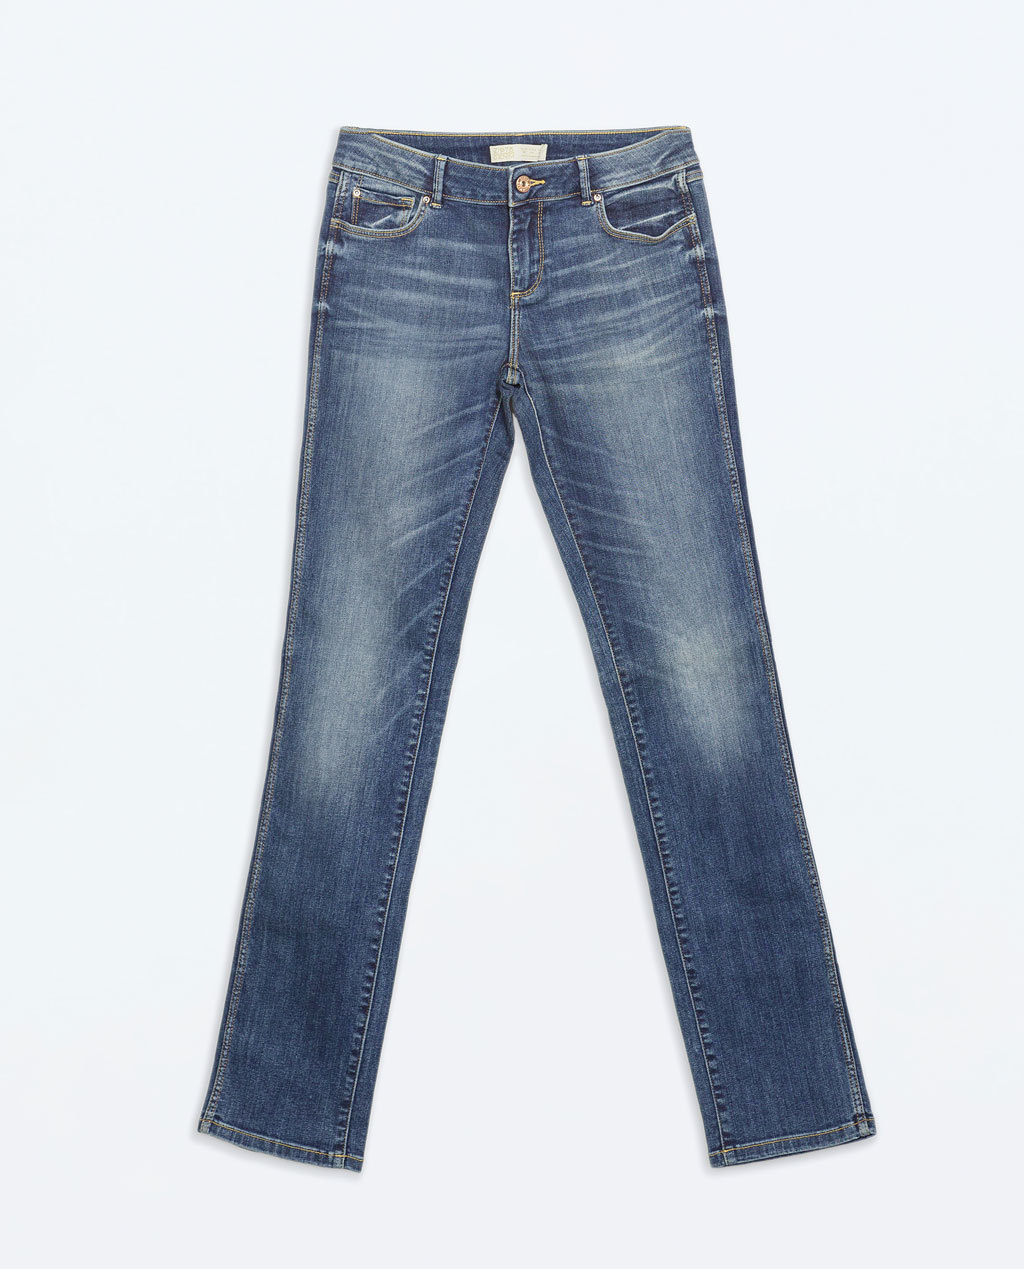 Medium Rise Straight Fit Jeans - style: straight leg; length: standard; pattern: plain; pocket detail: traditional 5 pocket; waist: mid/regular rise; predominant colour: denim; occasions: casual; fibres: cotton - stretch; jeans detail: whiskering, shading down centre of thigh; texture group: denim; pattern type: fabric; season: a/w 2014